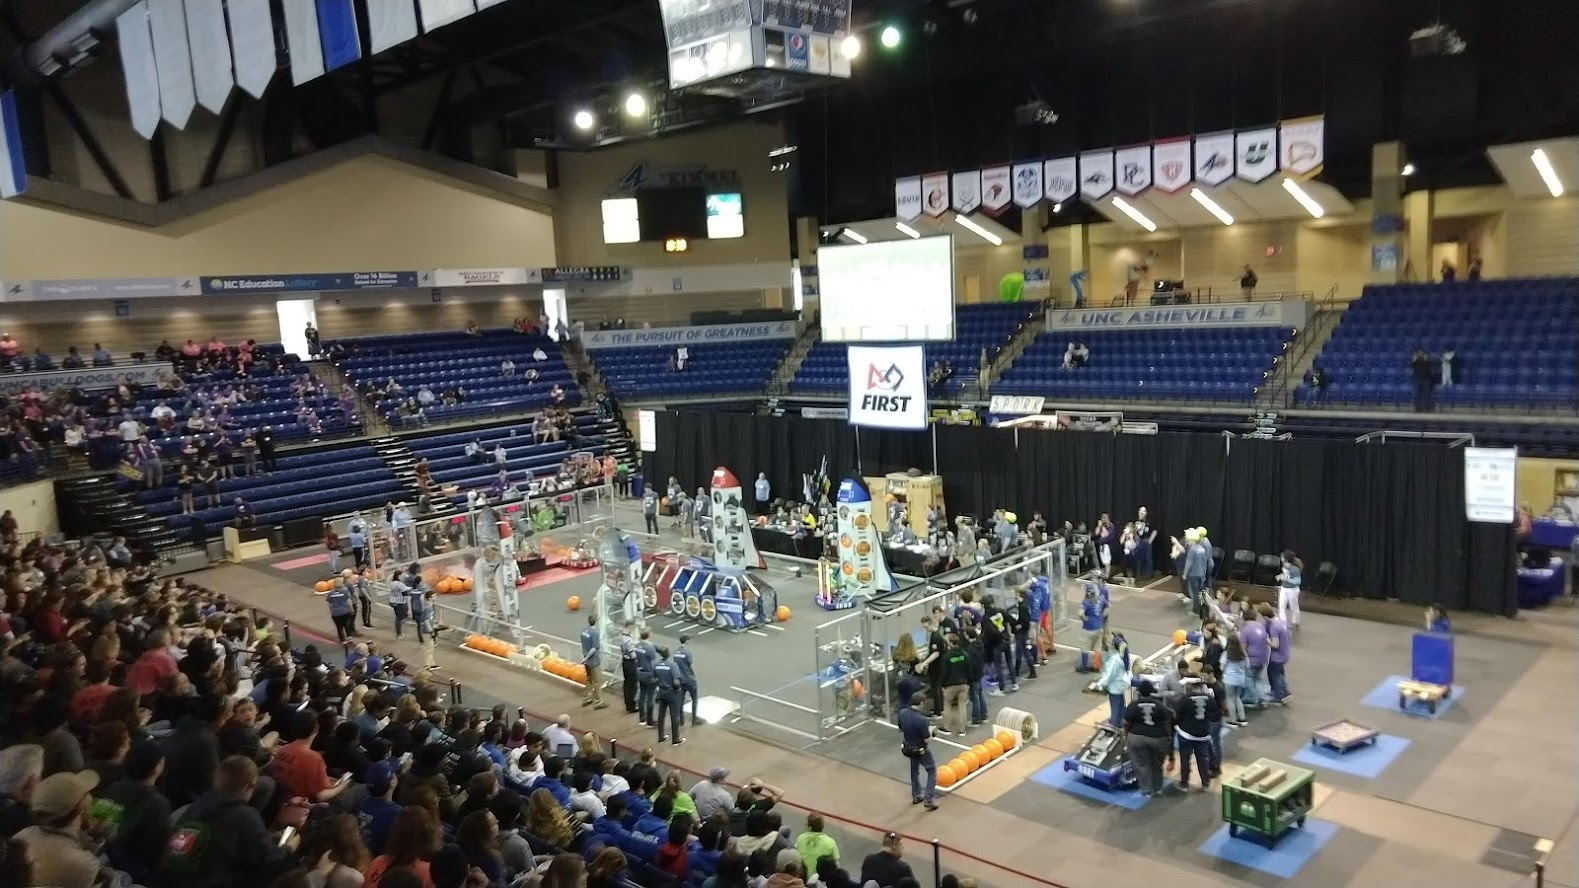 Hosted practice sessions for FIRST Robotics Competition teams, including Girls on Fire, and attended FRC competitions